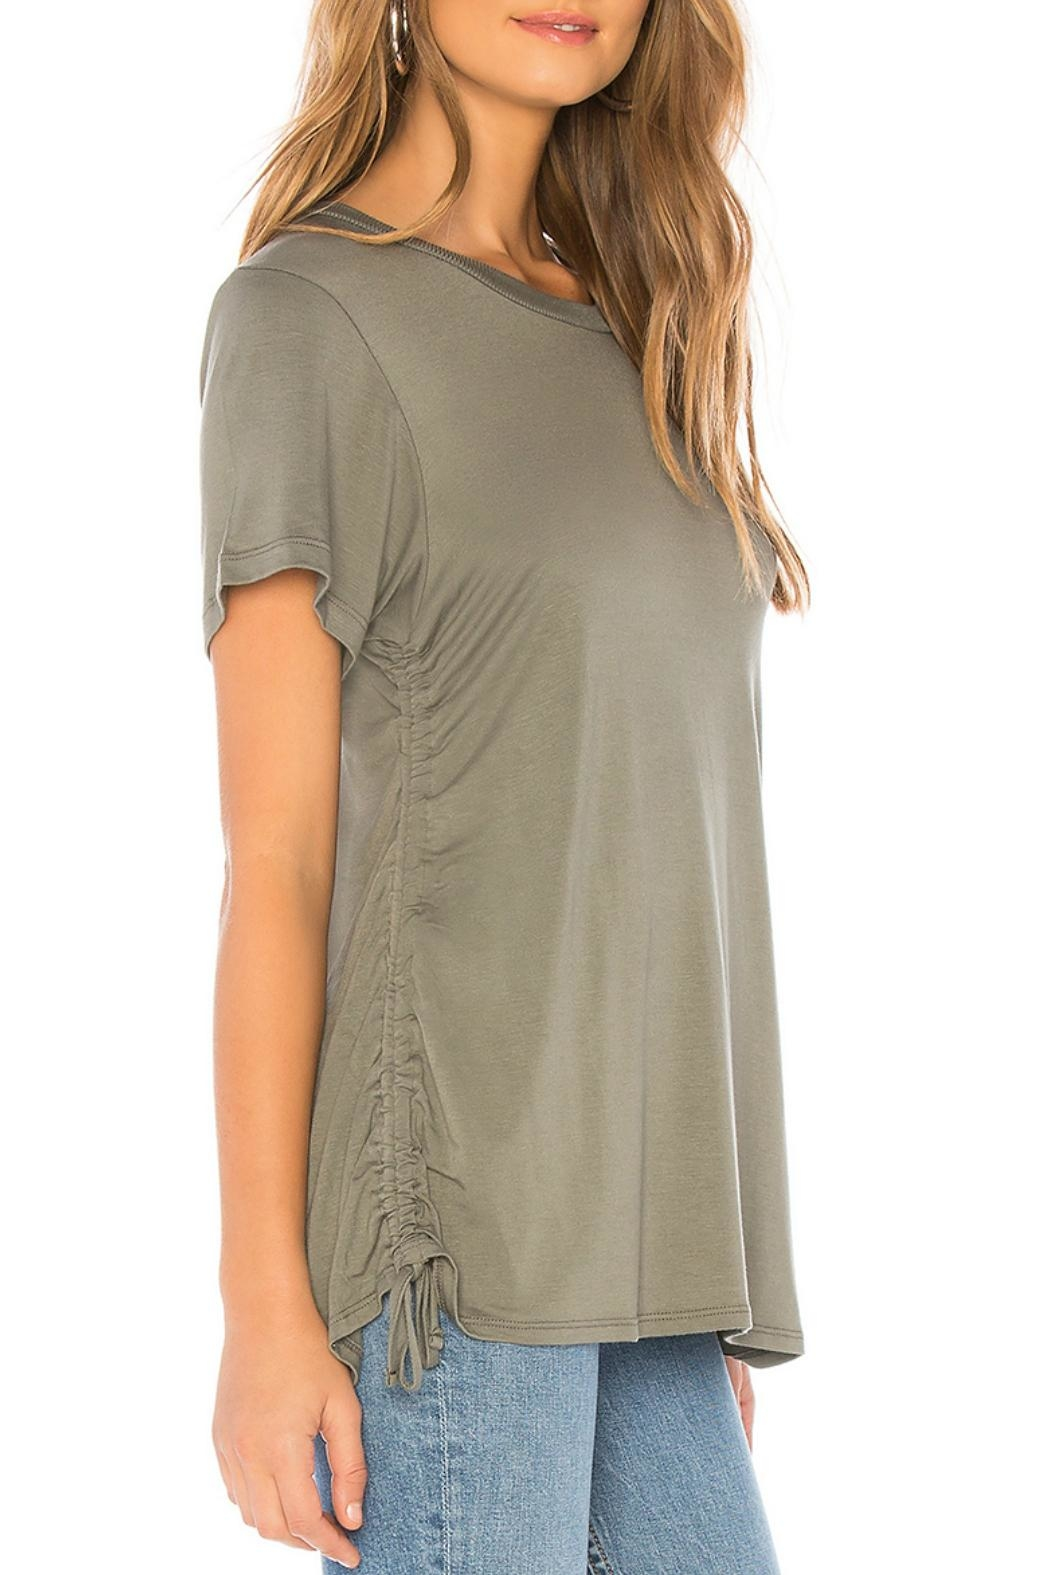 LNA Ari Cinched-Side Tee - Side Cropped Image